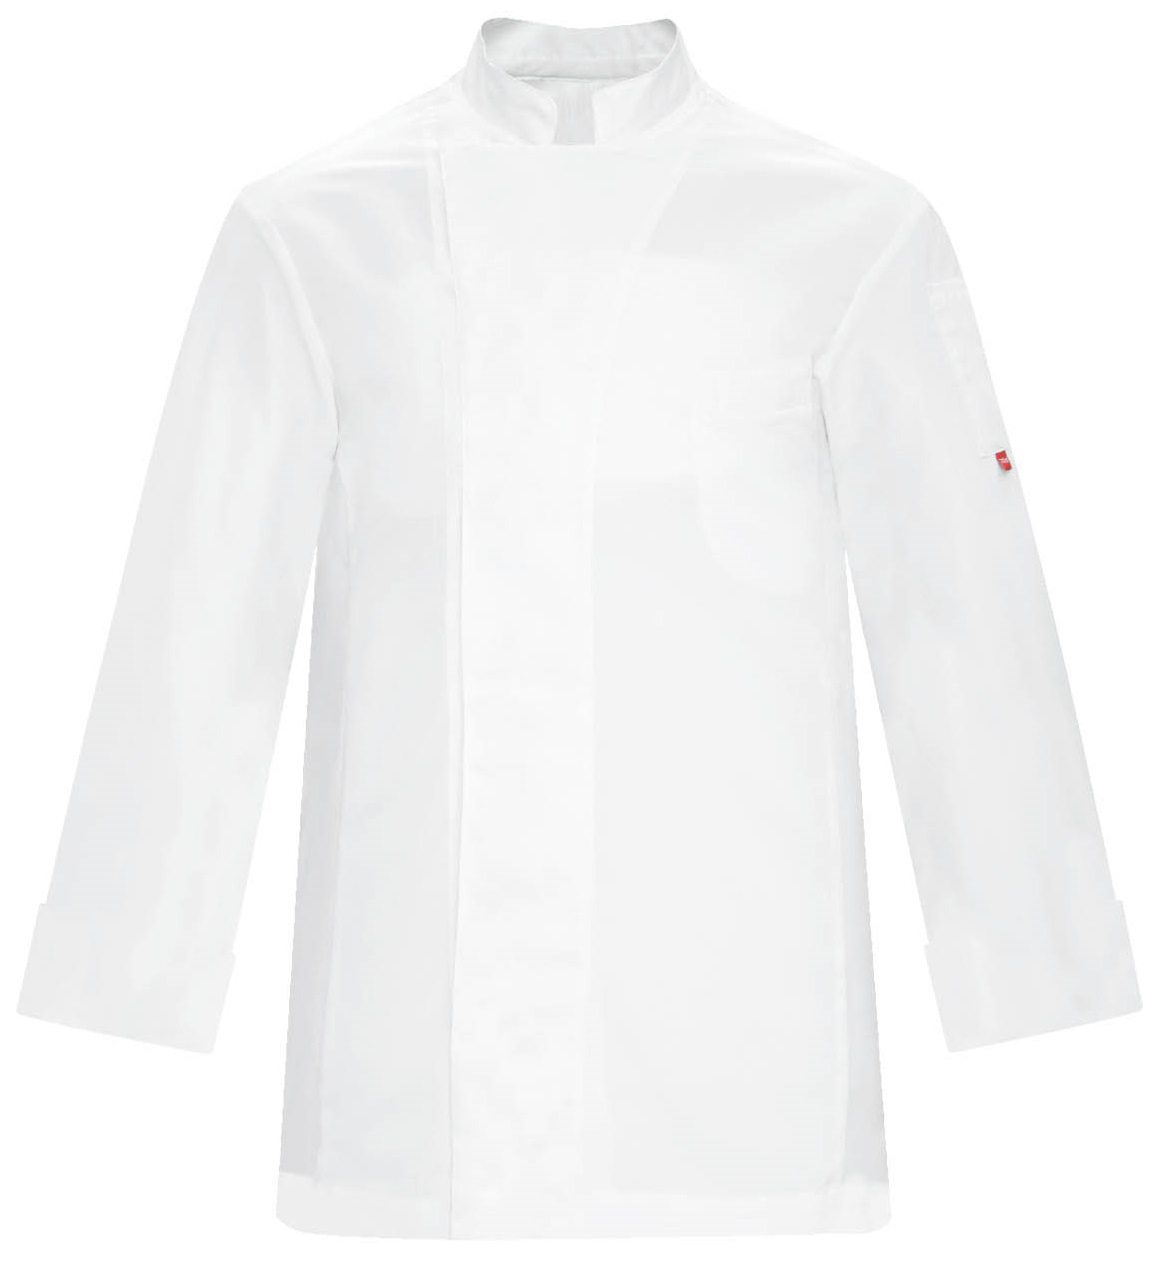 Picture of Σακάκι Chef Victor 100% Microfiber 1630 / Άσπρο